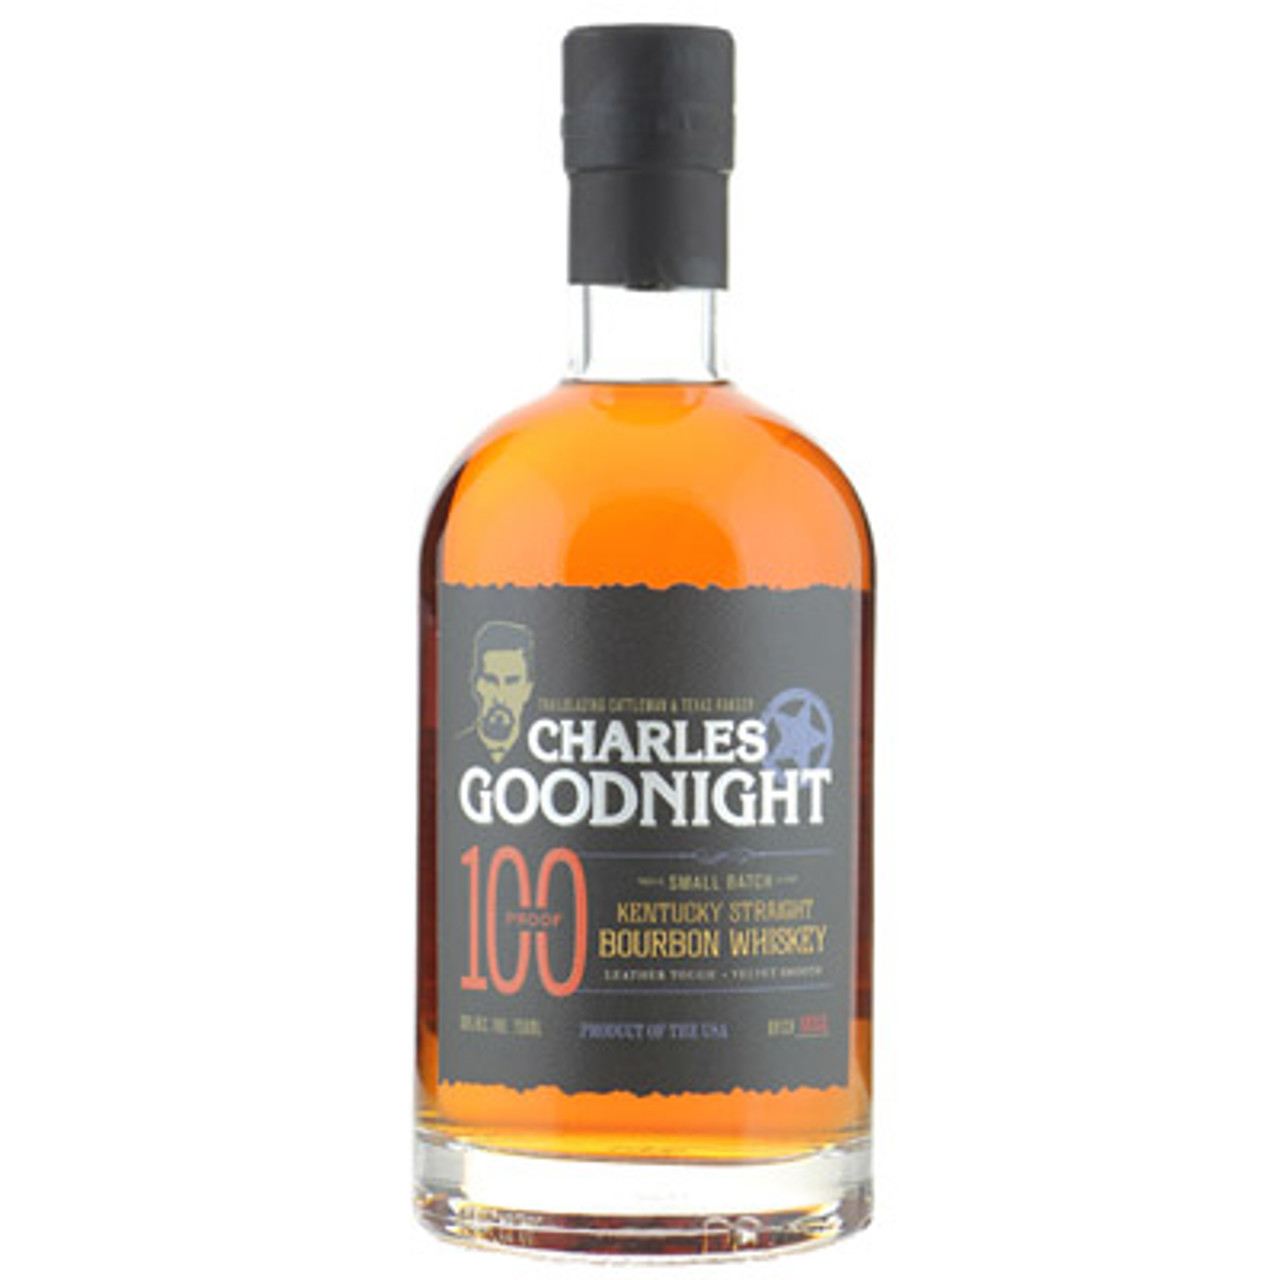 Charles Goodnight Bourbon 750ml